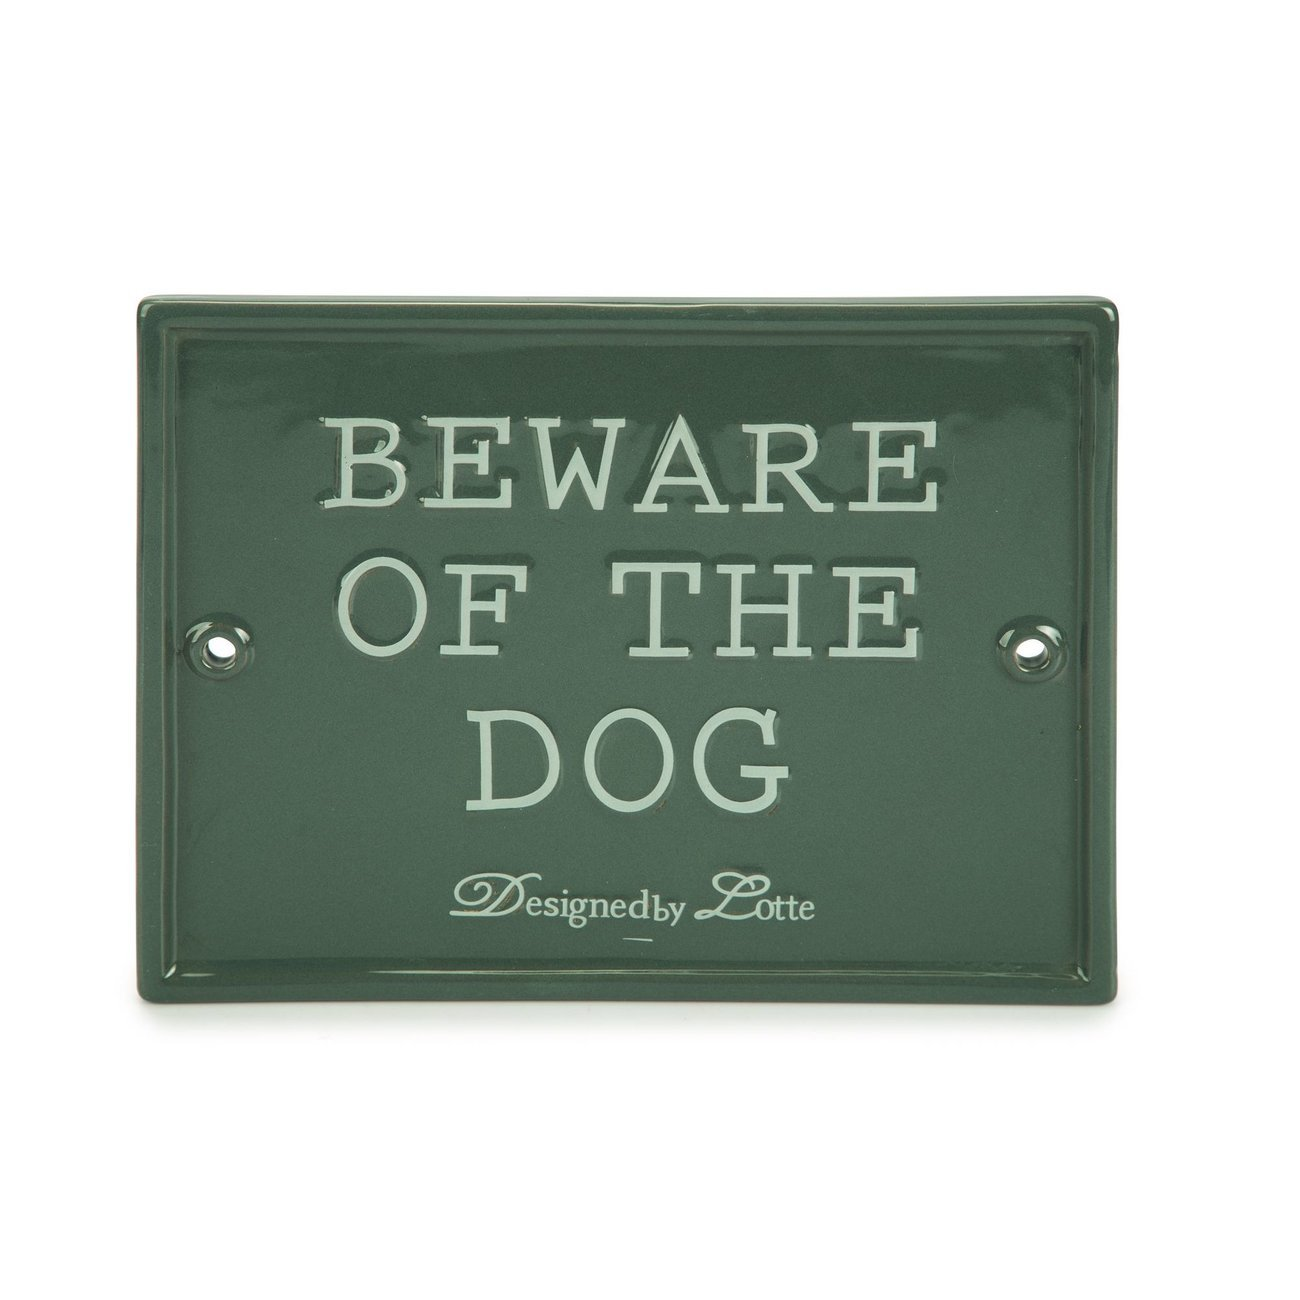 Beeztees Beware of the Dog Keramikschild, 20 x 16 x 1 cm, grau